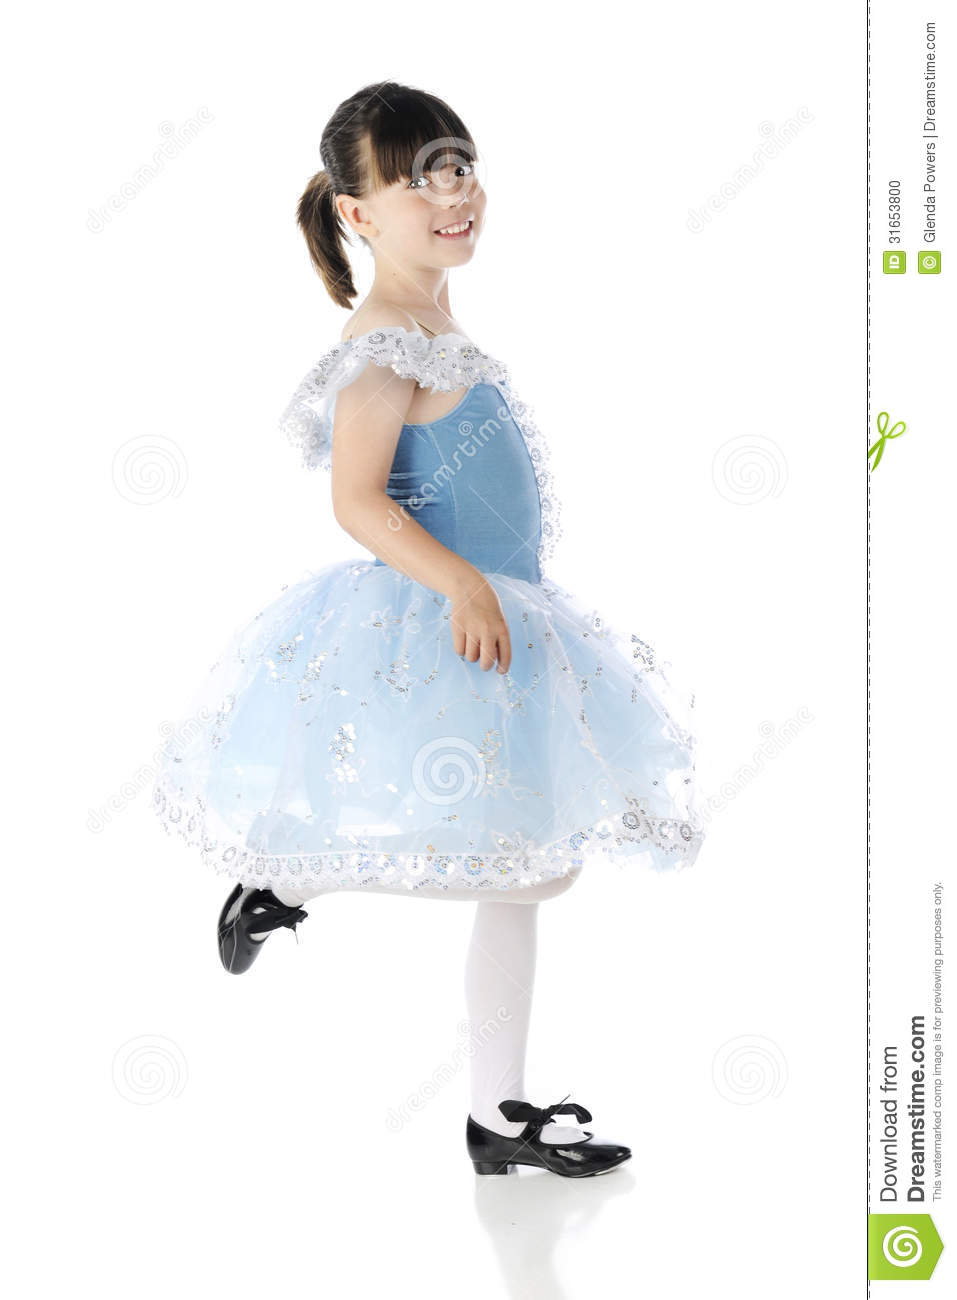 Would young girls tap dancing question apologise